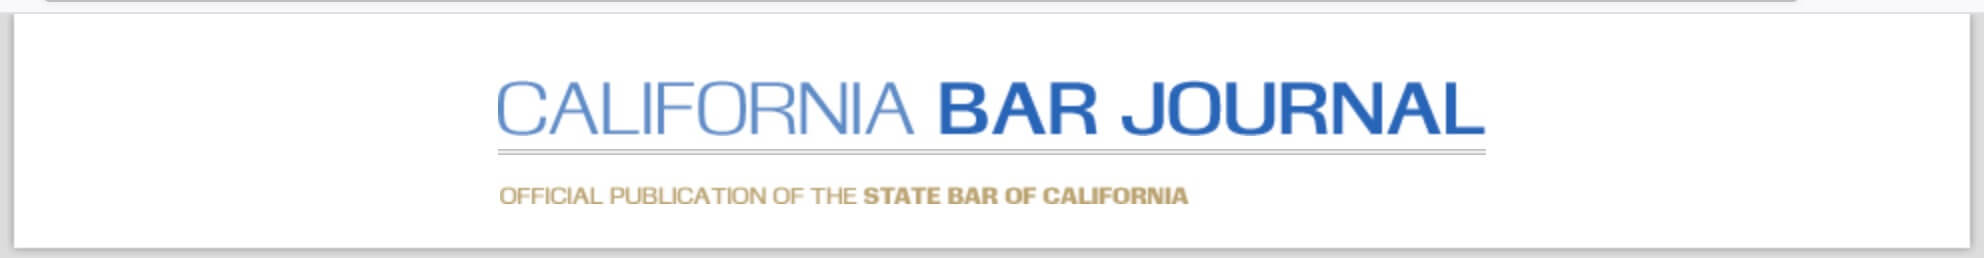 California Bar Journal write up about plaintiffs' personal injury attorney Michael Ehline's beet harvester wrongful death lawsuit involving an agricultural worker.